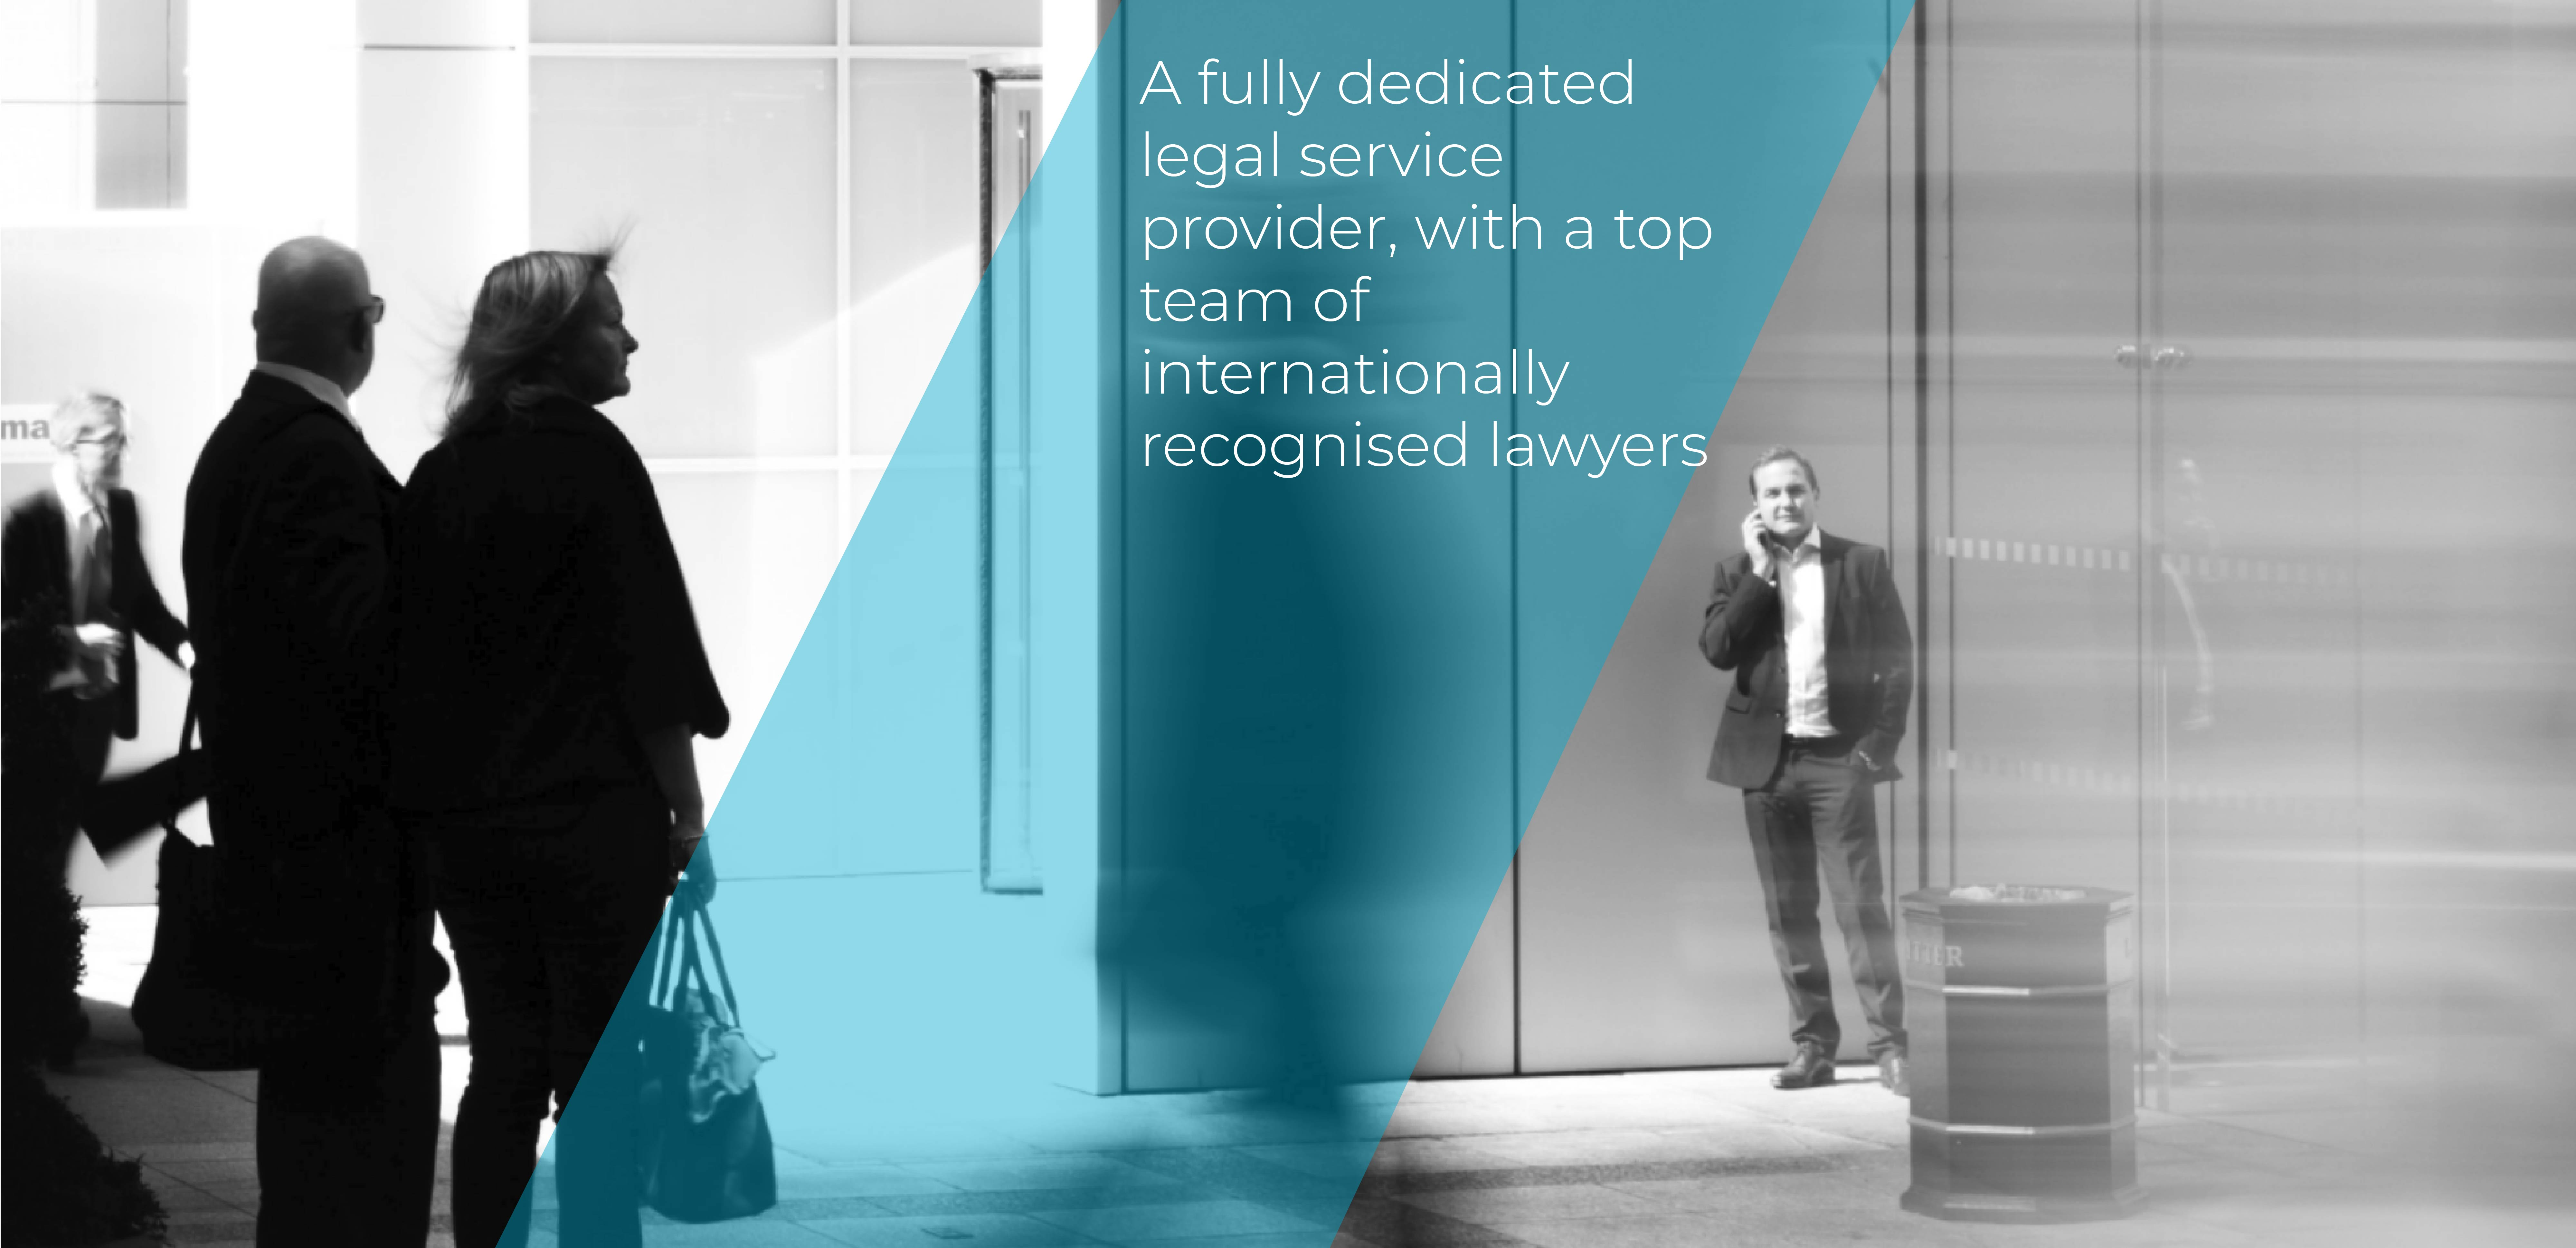 A fully dedicated legal service provider, with a top team of internationally recognised lawyers